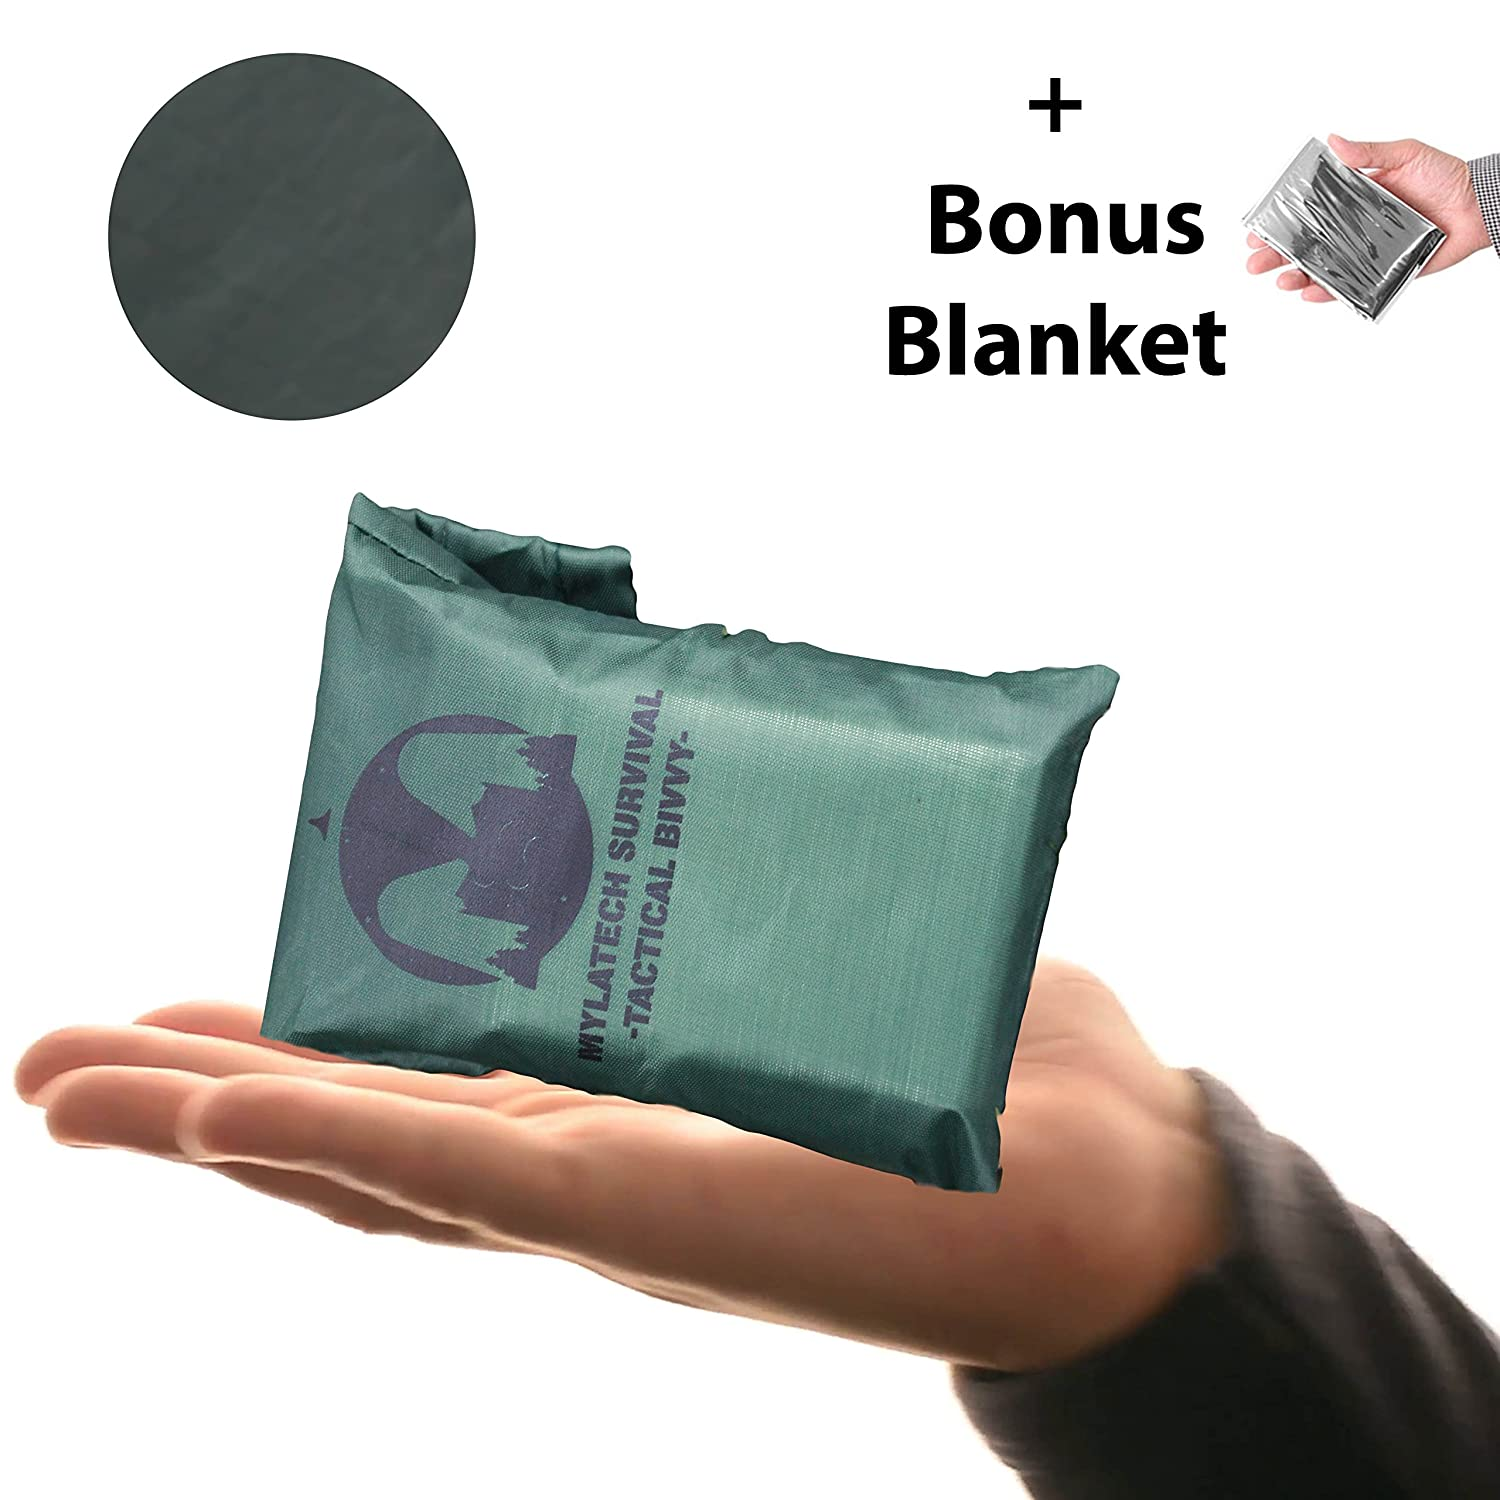 (Army Green) Emergency Sleeping Bag (+ Free Emergency Blanket) - Lightweight, Waterproof Bivy Sack Made with Our Advanced Thermal Material + Nylon Carry Bag, Camping Gear & Bug Out Bags & Kits Mylatech Survival